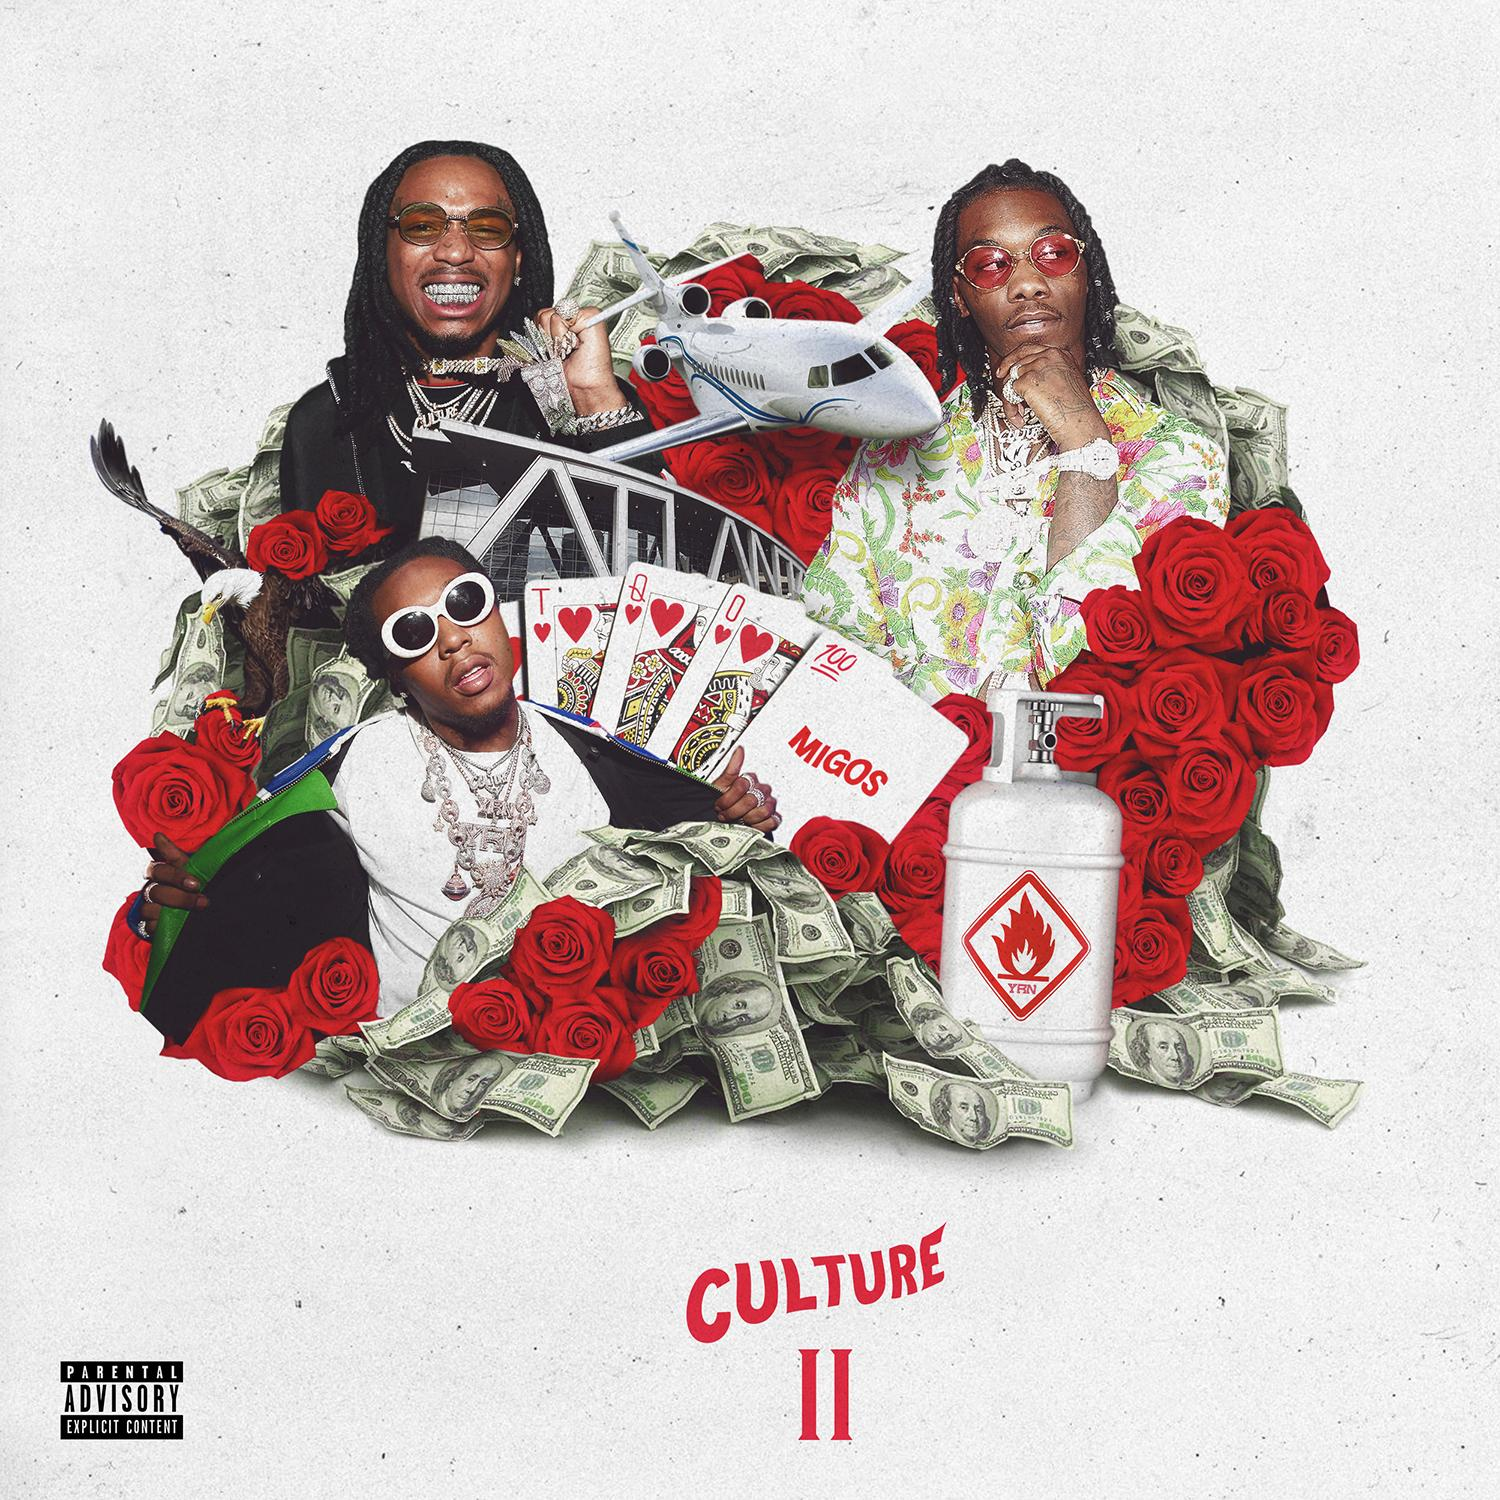 MIGOS - CULTURE II (Culture 2) [ALBUM LEAK], MIGOS, CULTURE II, Culture 2, ALBUM, LEAK, download, cdq, 320kbps, audiomack, dopefile, datafilehost, toxicwap, fakaza, mp3goo, zip, alac, zippy, album, descarger, gratis, telecharger, baixer